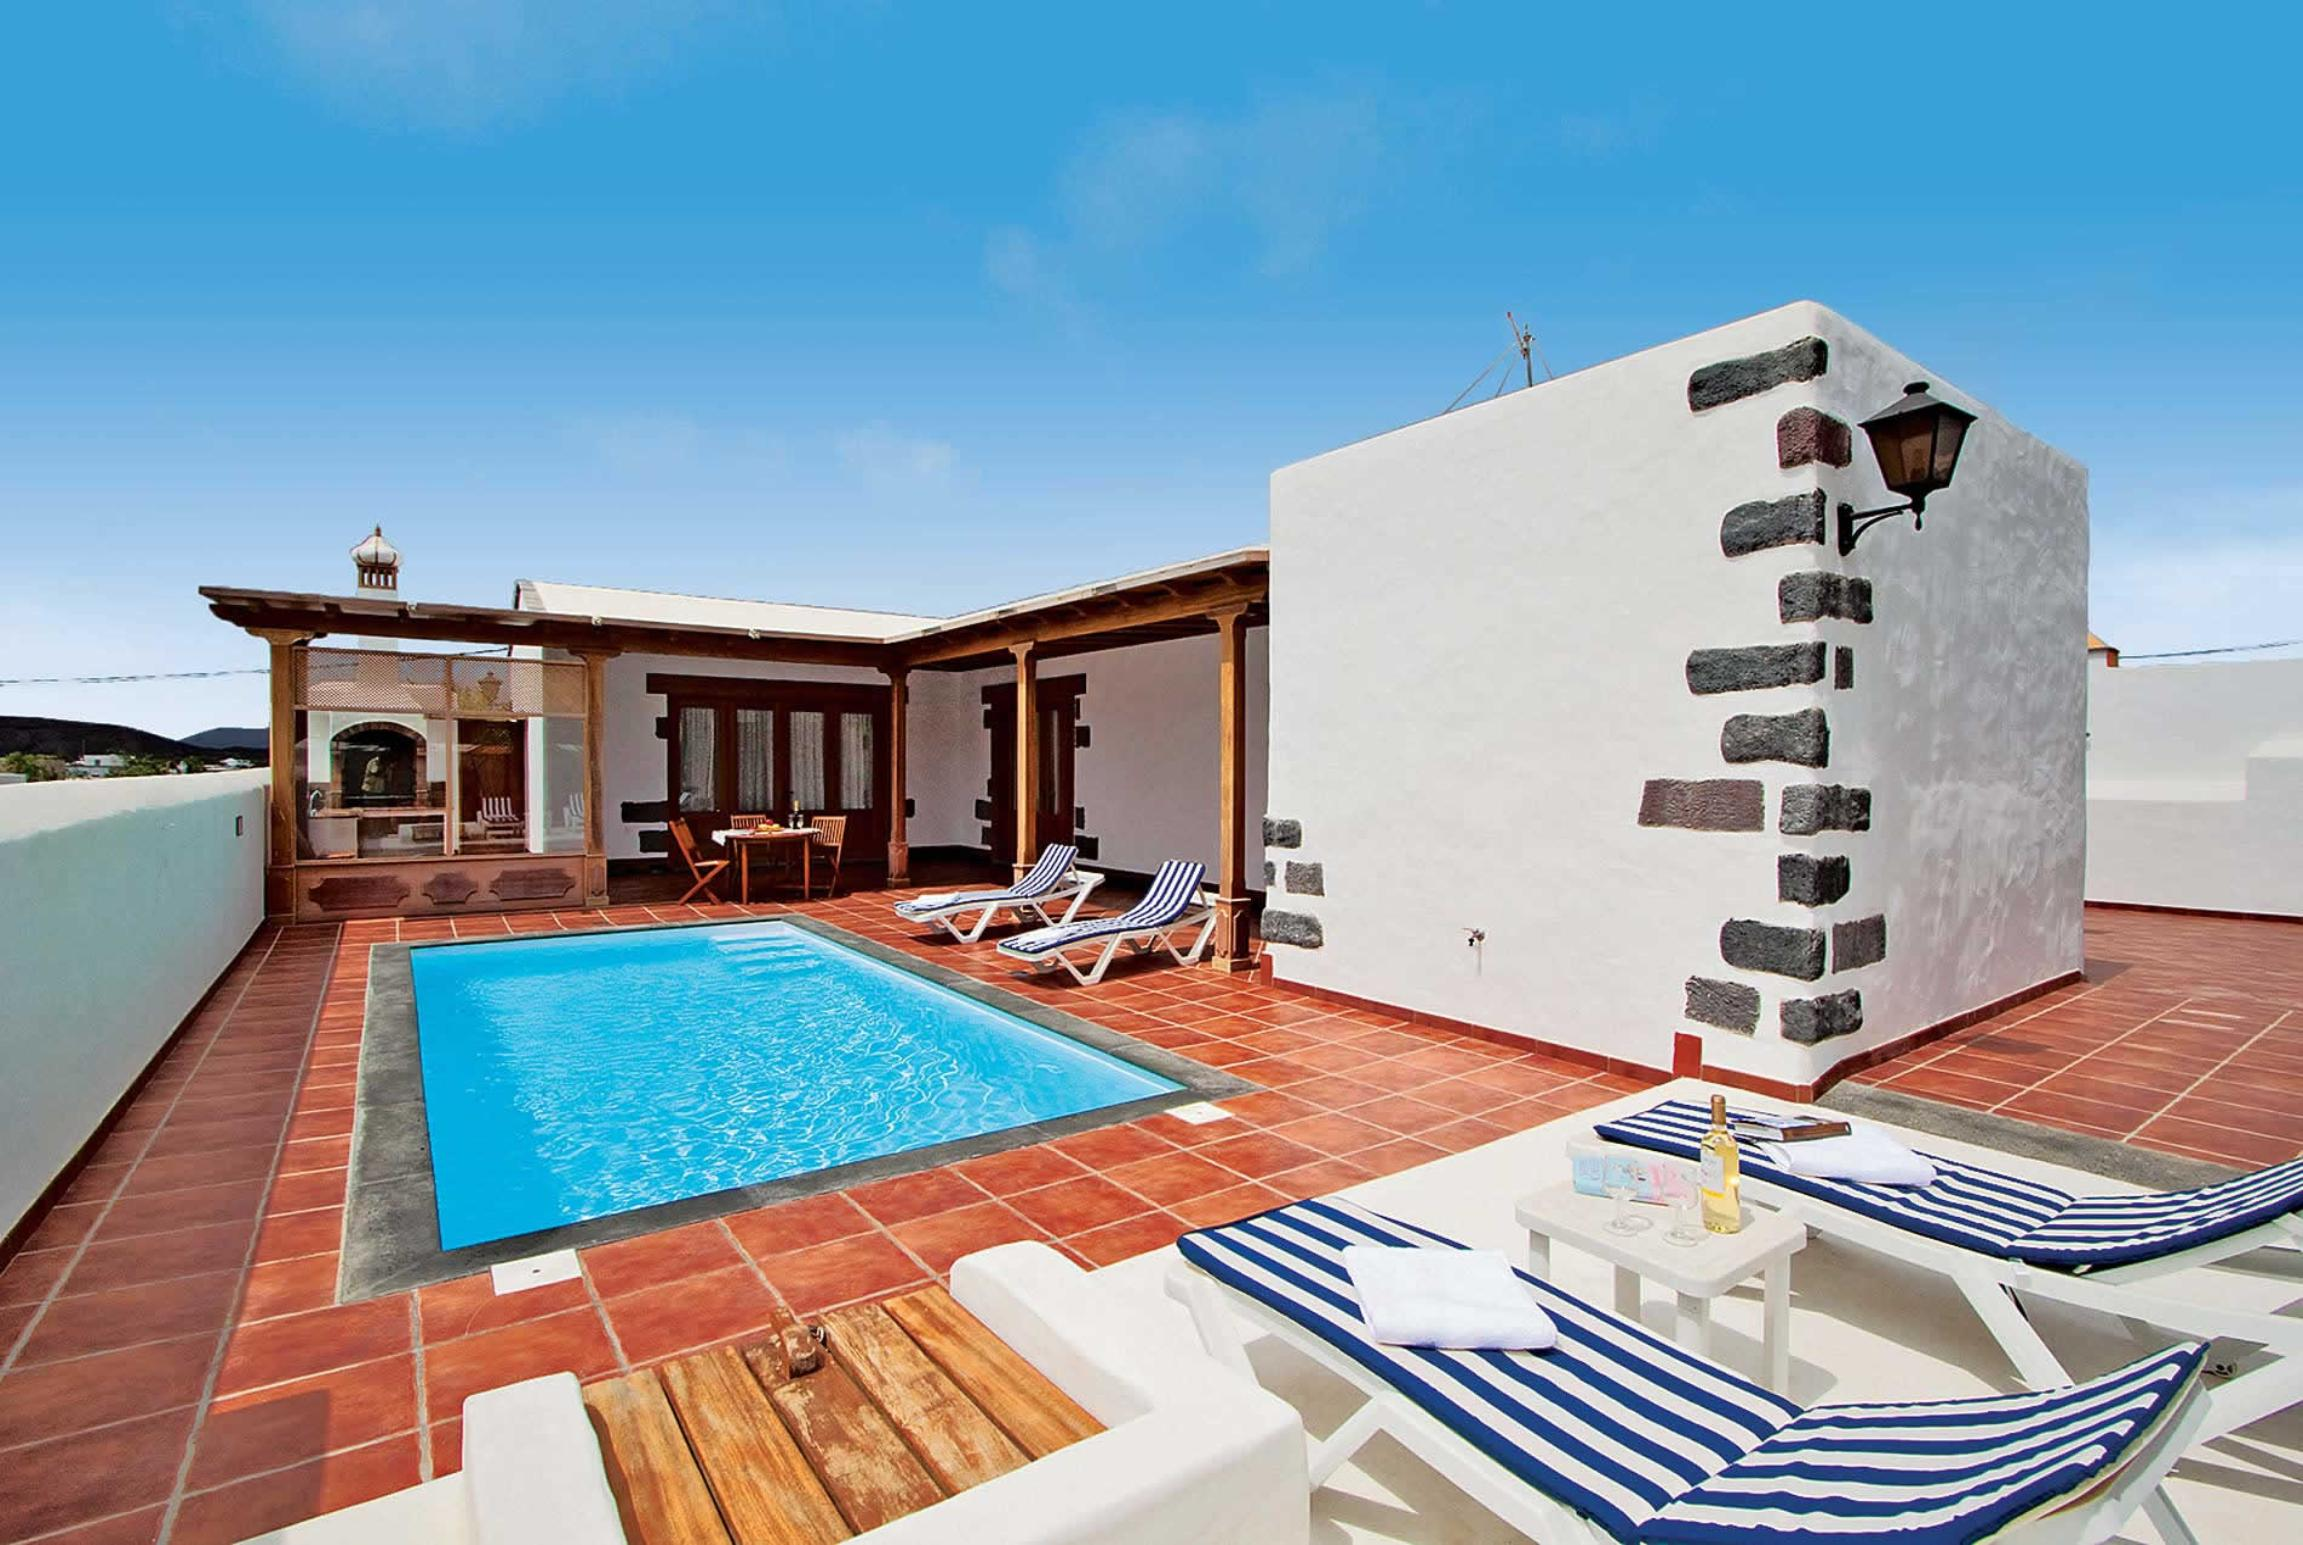 Read more about Buenlugar villa